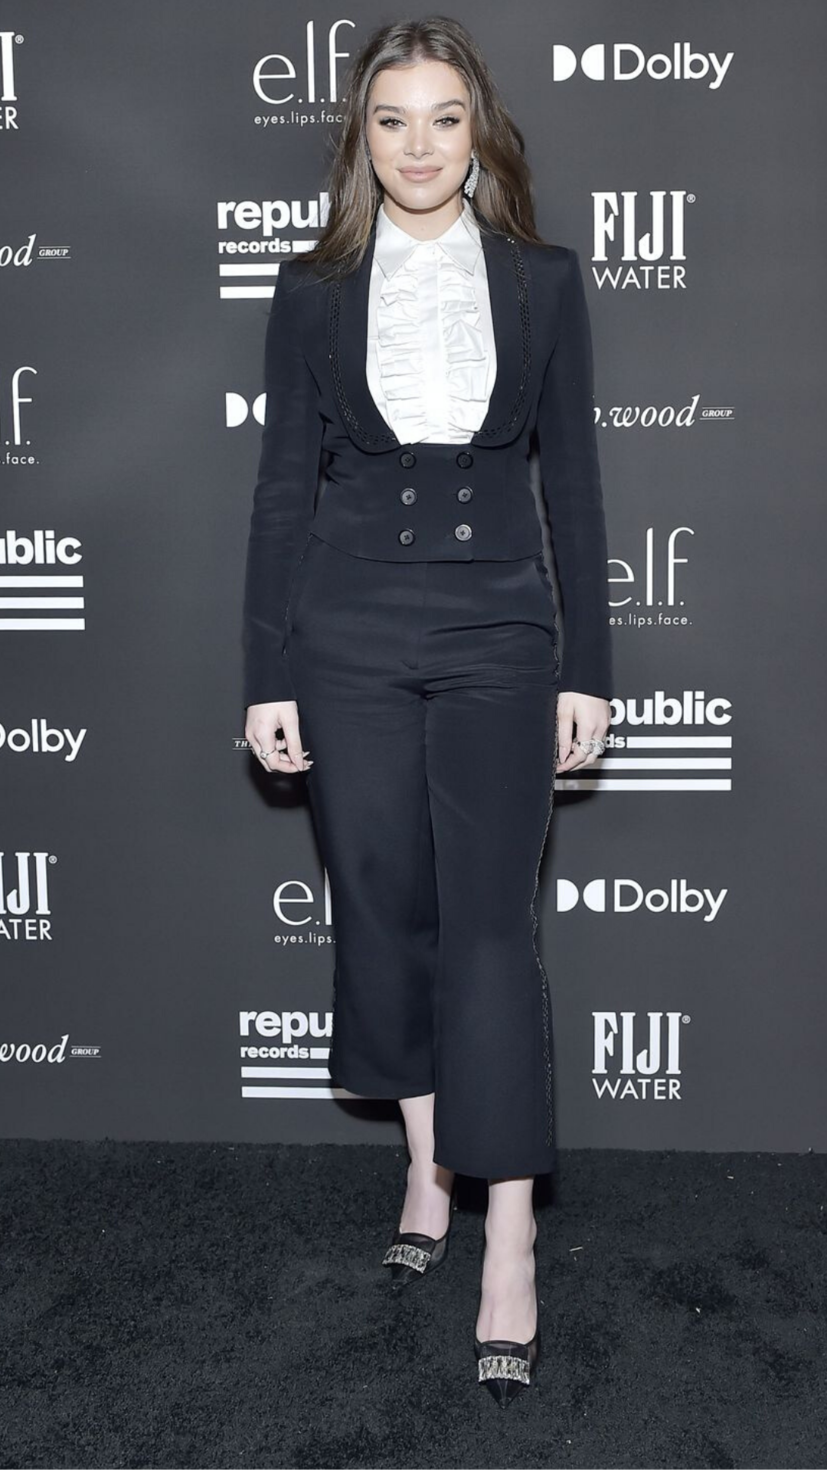 Hailee Steinfeld wears a black and white Victorian-era inspired suit